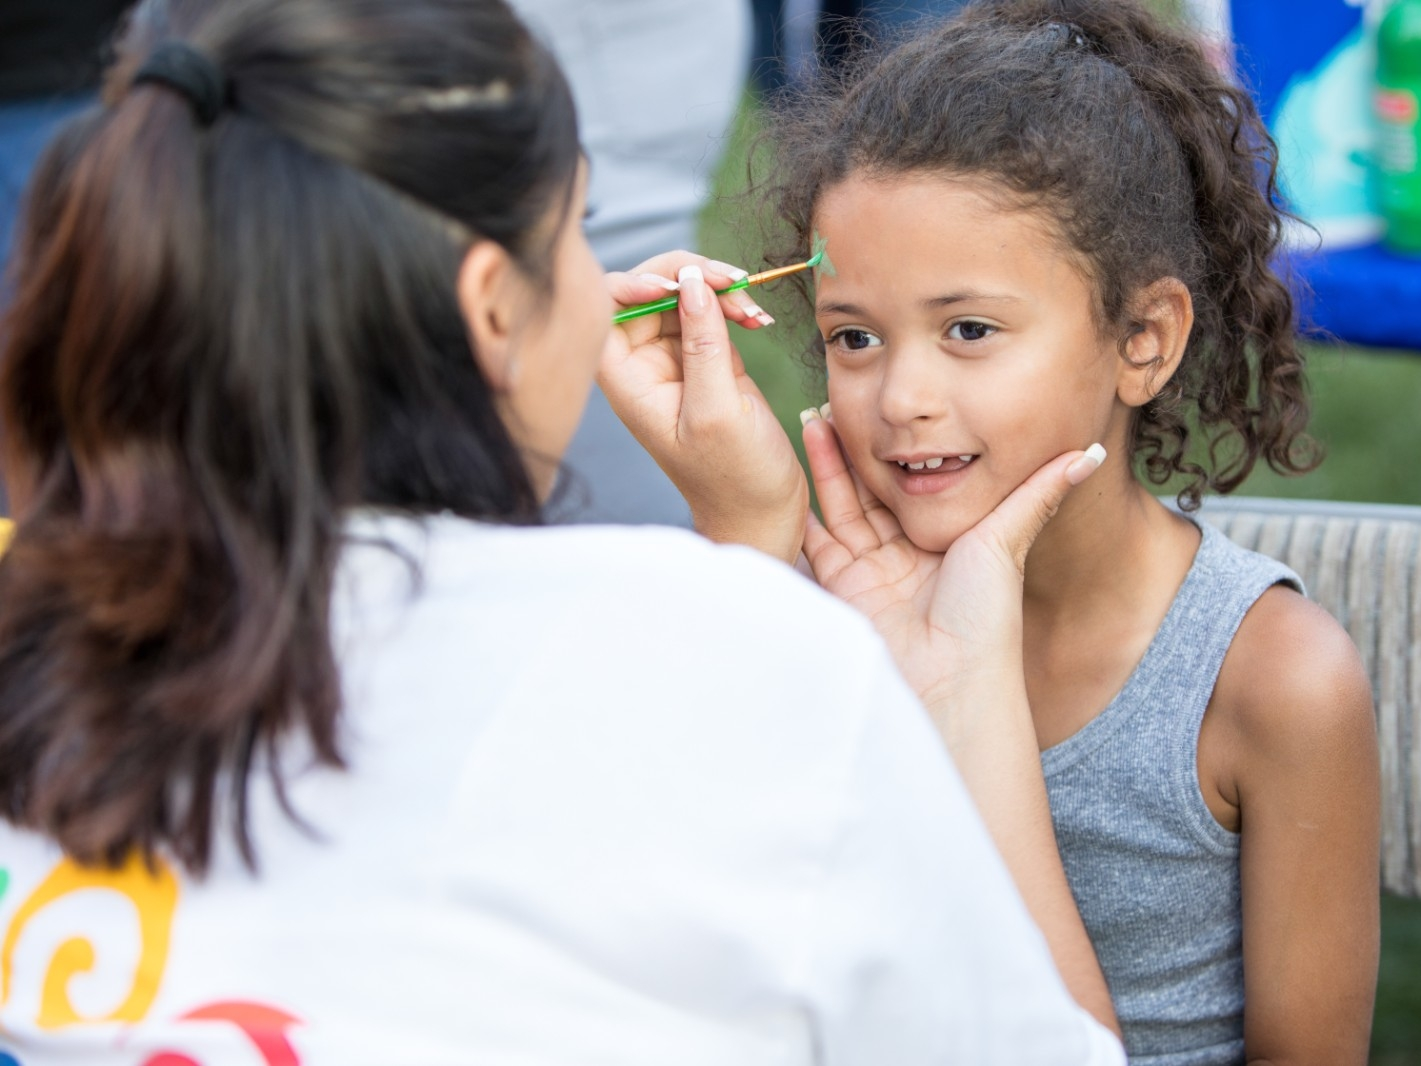 A young girl has her face painted at a community event.